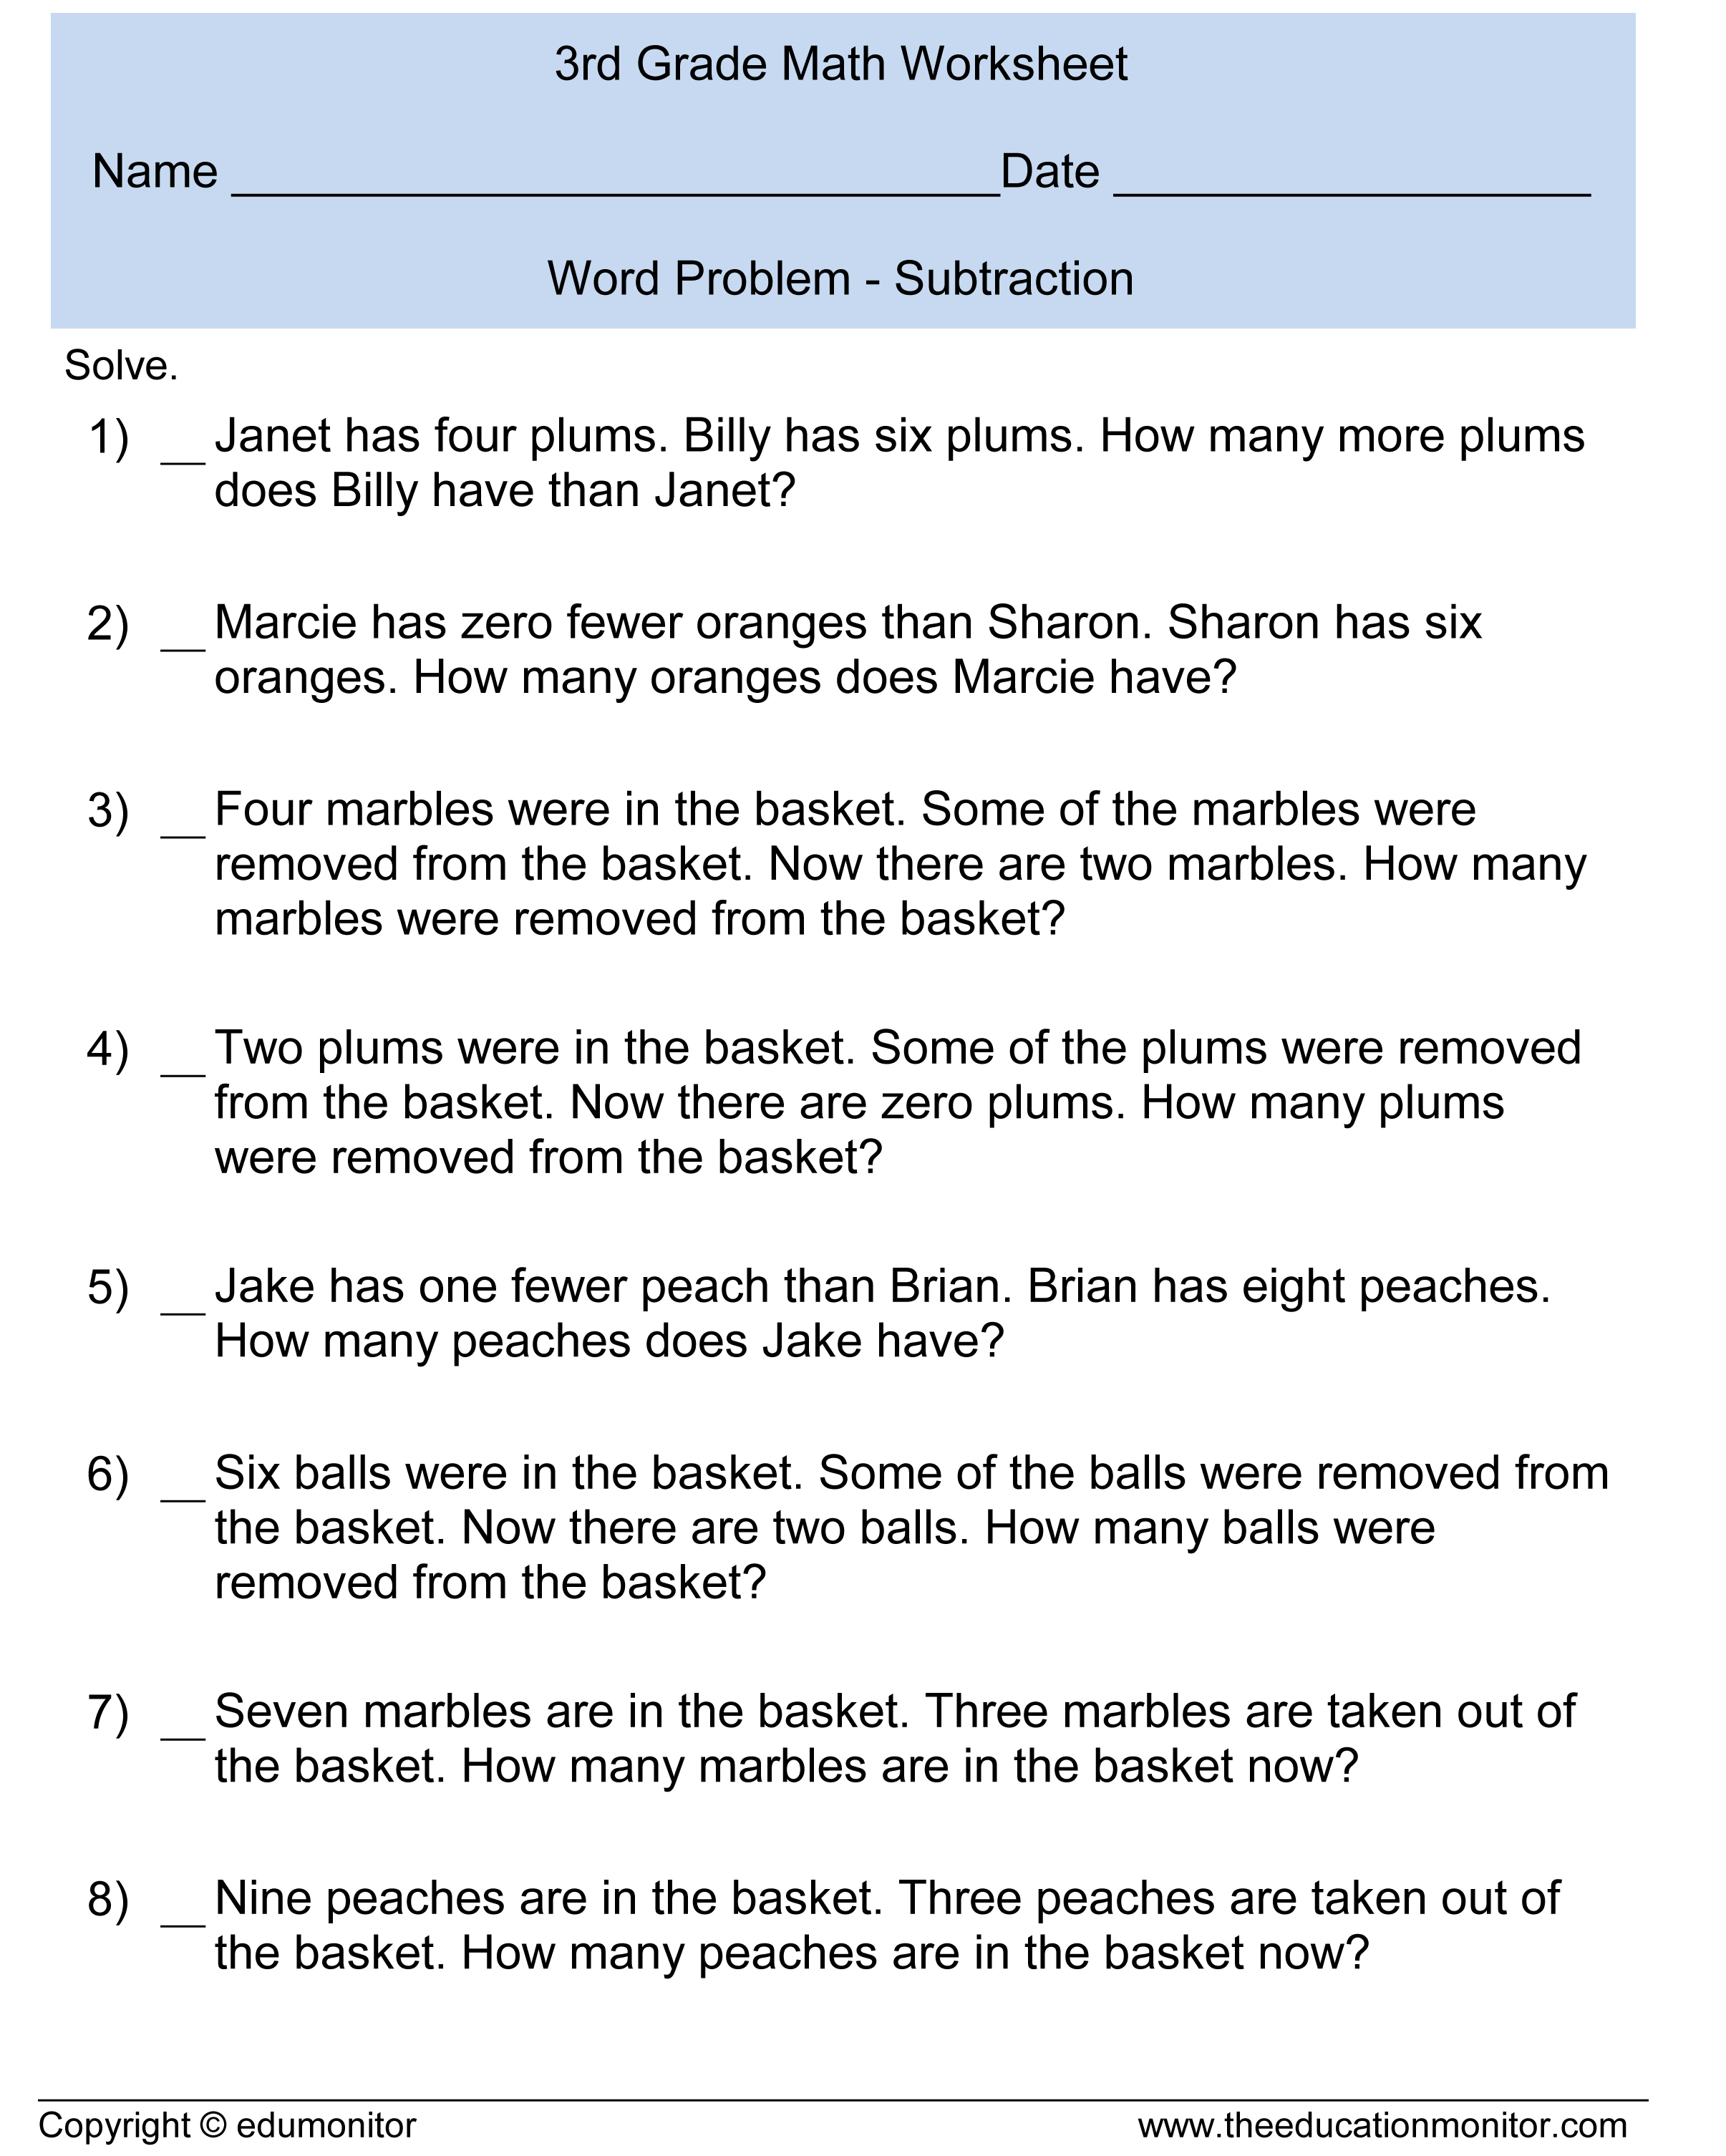 Worksheet Math Word Problems 3rd Grade Worksheet Fun